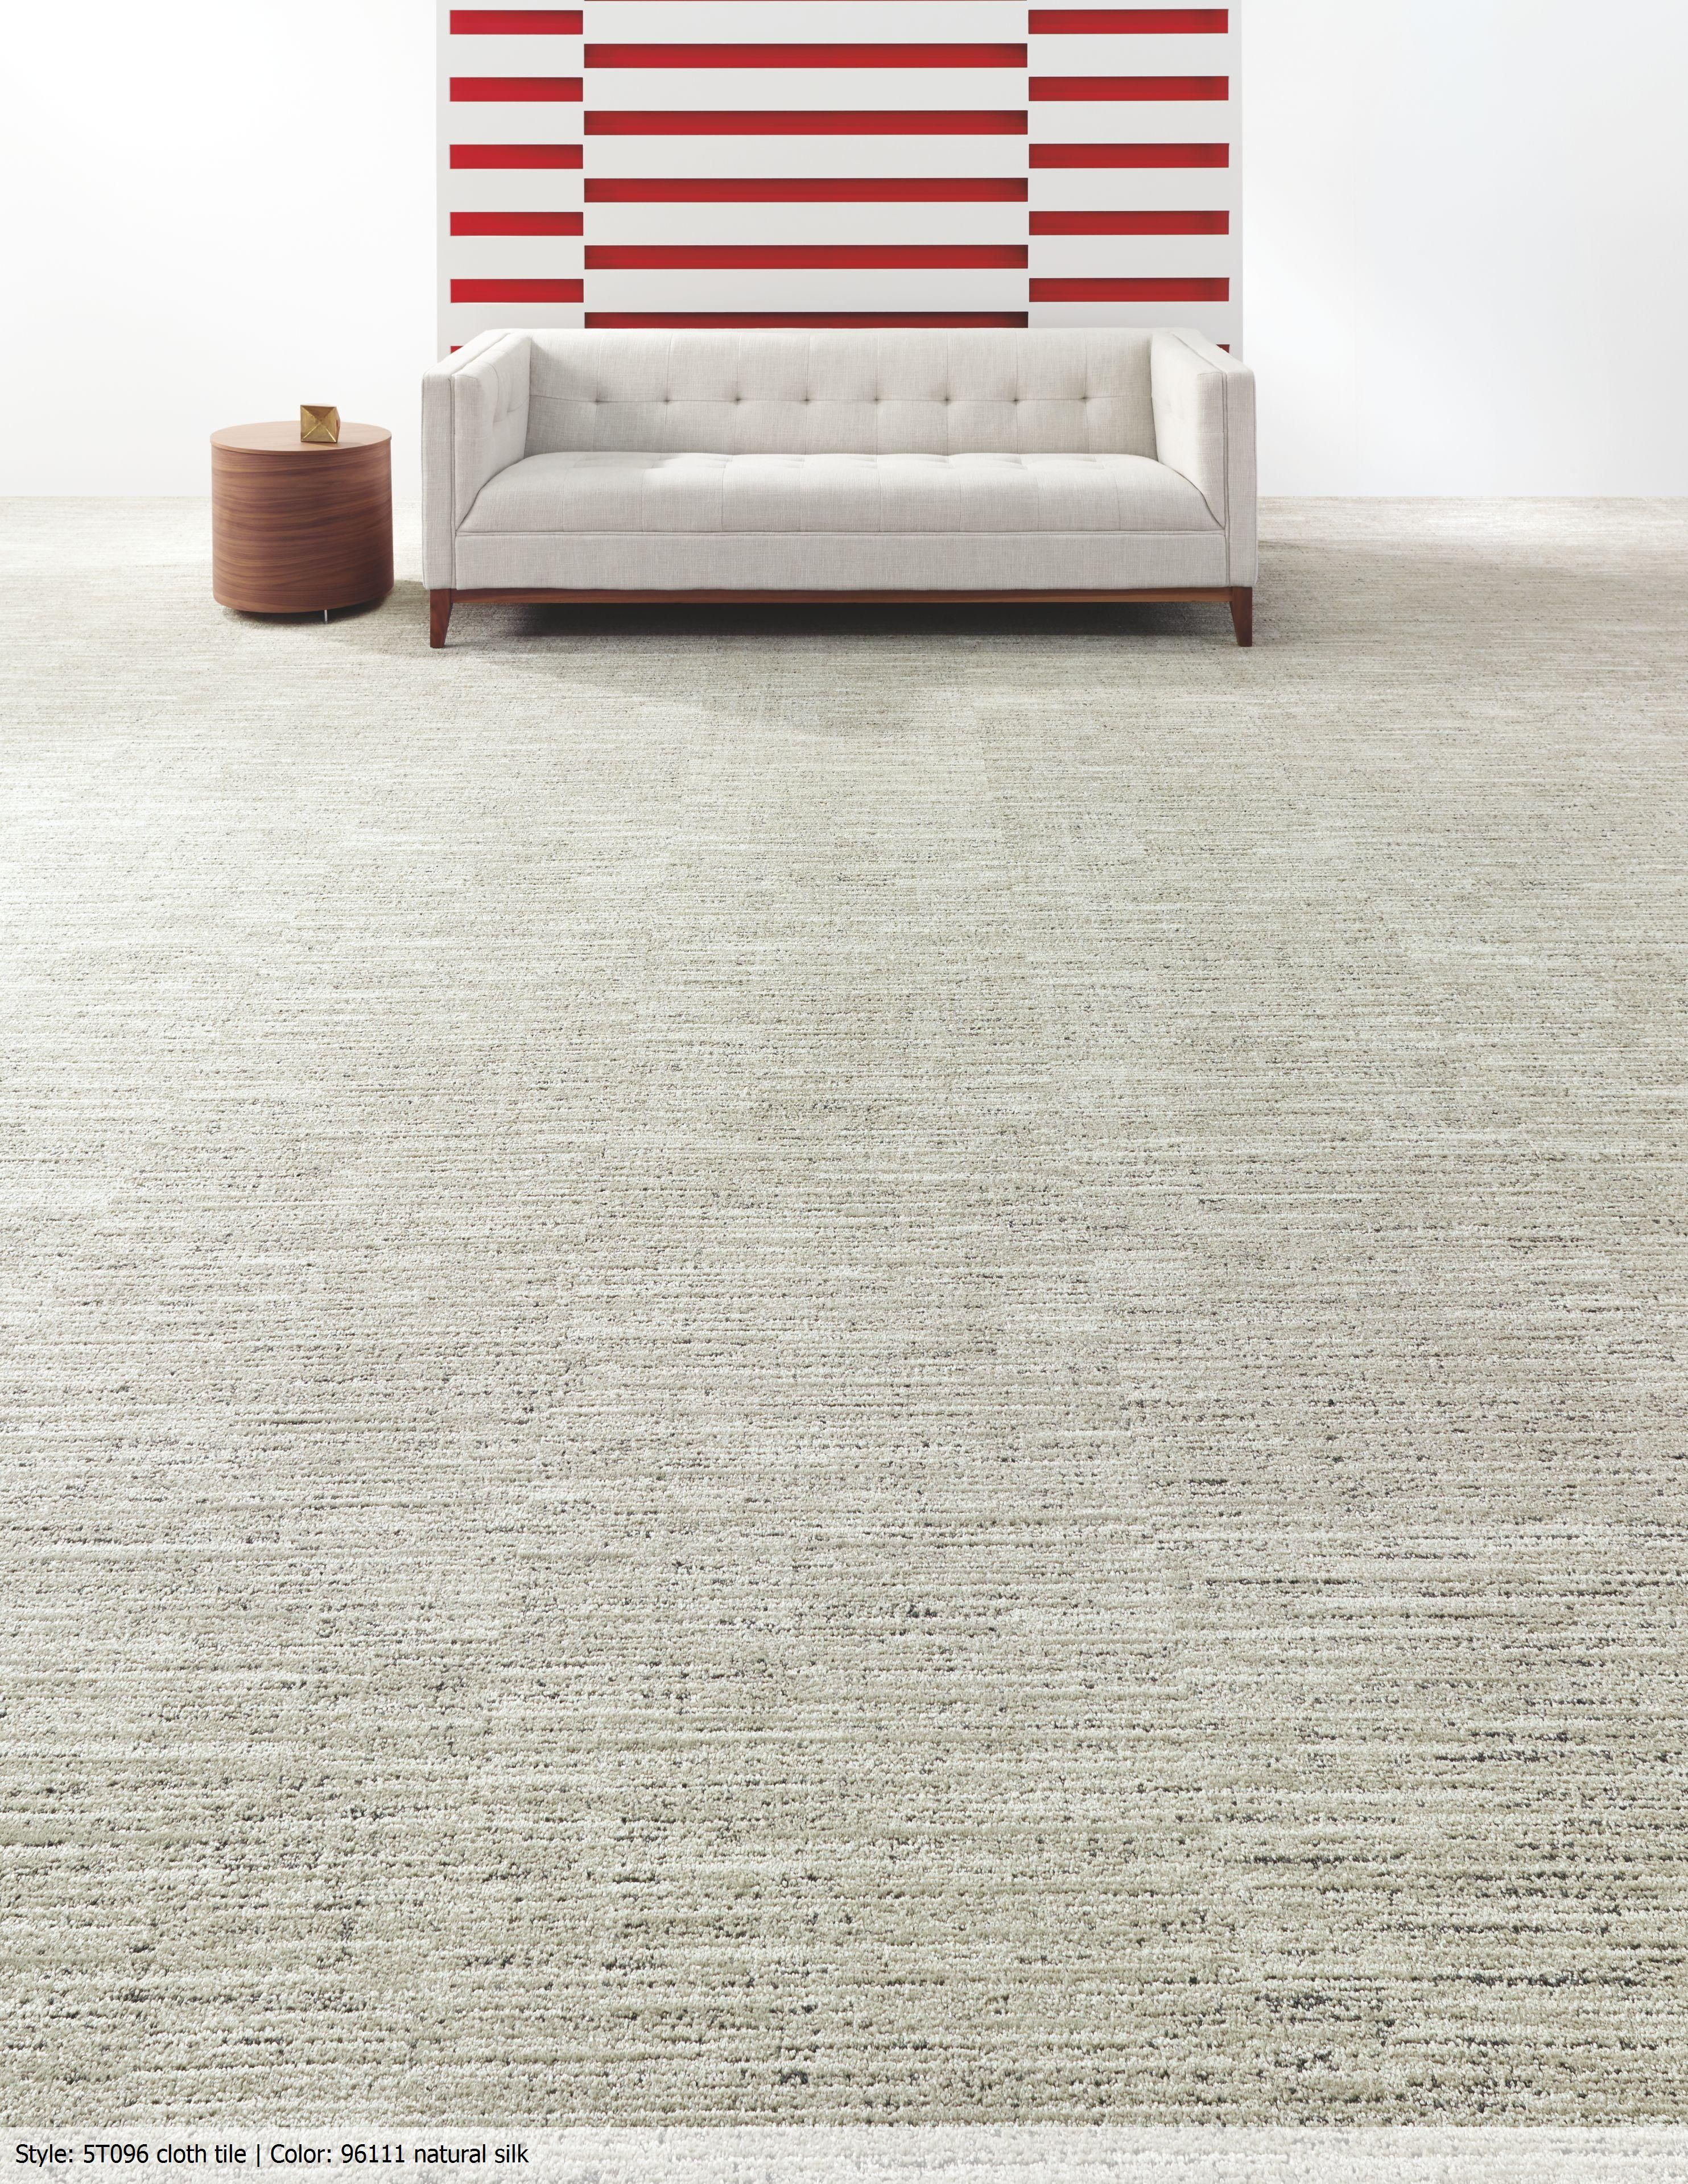 Cloth Tile In Colour Natural Silk Commercial Carpet Contemporary Office Furniture Furniture Removal